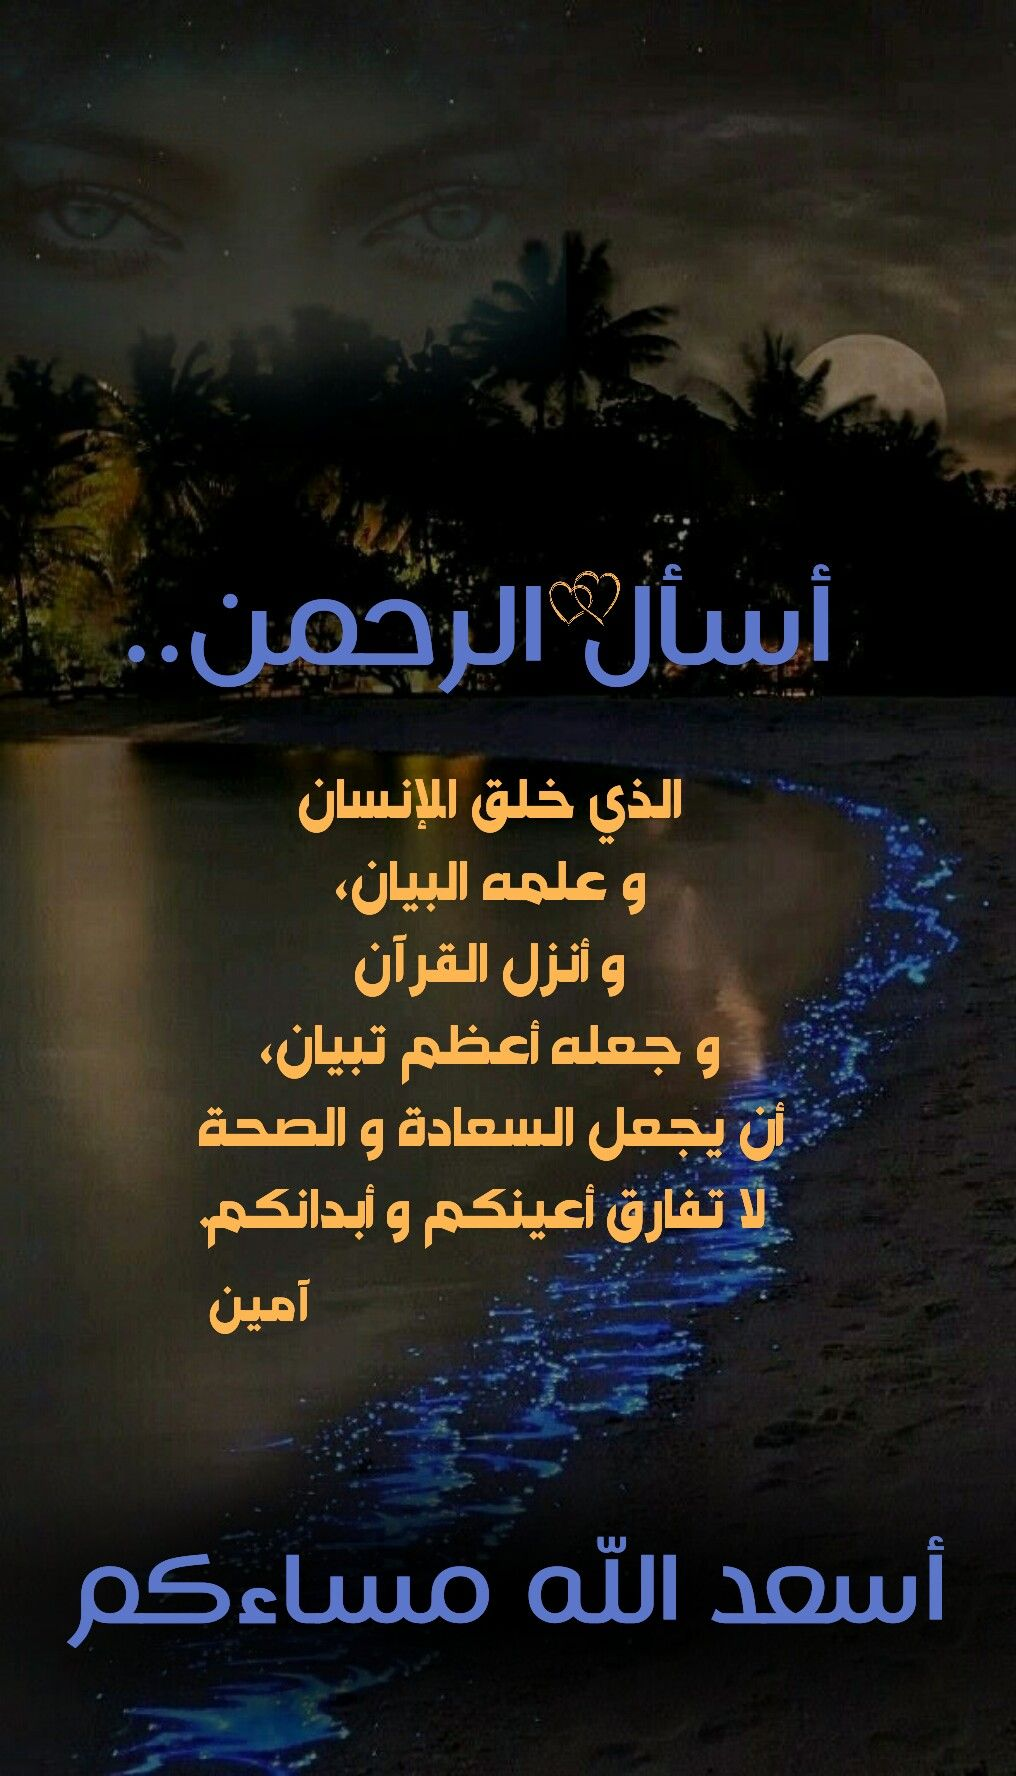 Versions Share C By Rhendy Hostta Thank You For Visiting My Pin In Pinterest Good Night Quotes Good Morning Gif Islam Facts